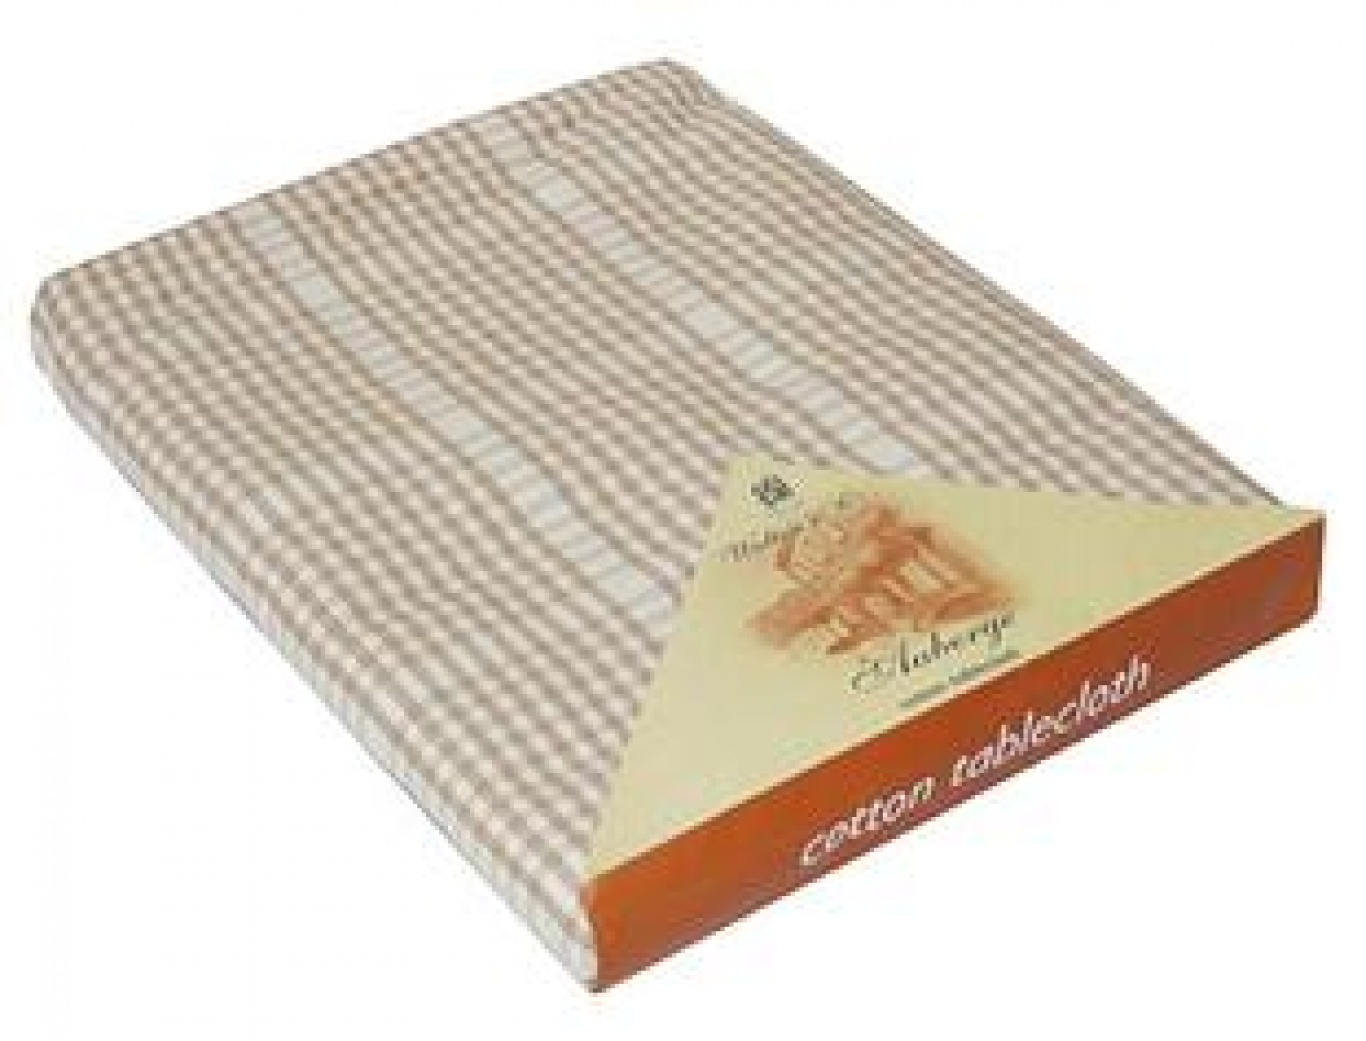 Image of Auberge Biscuit Check Tablecloth